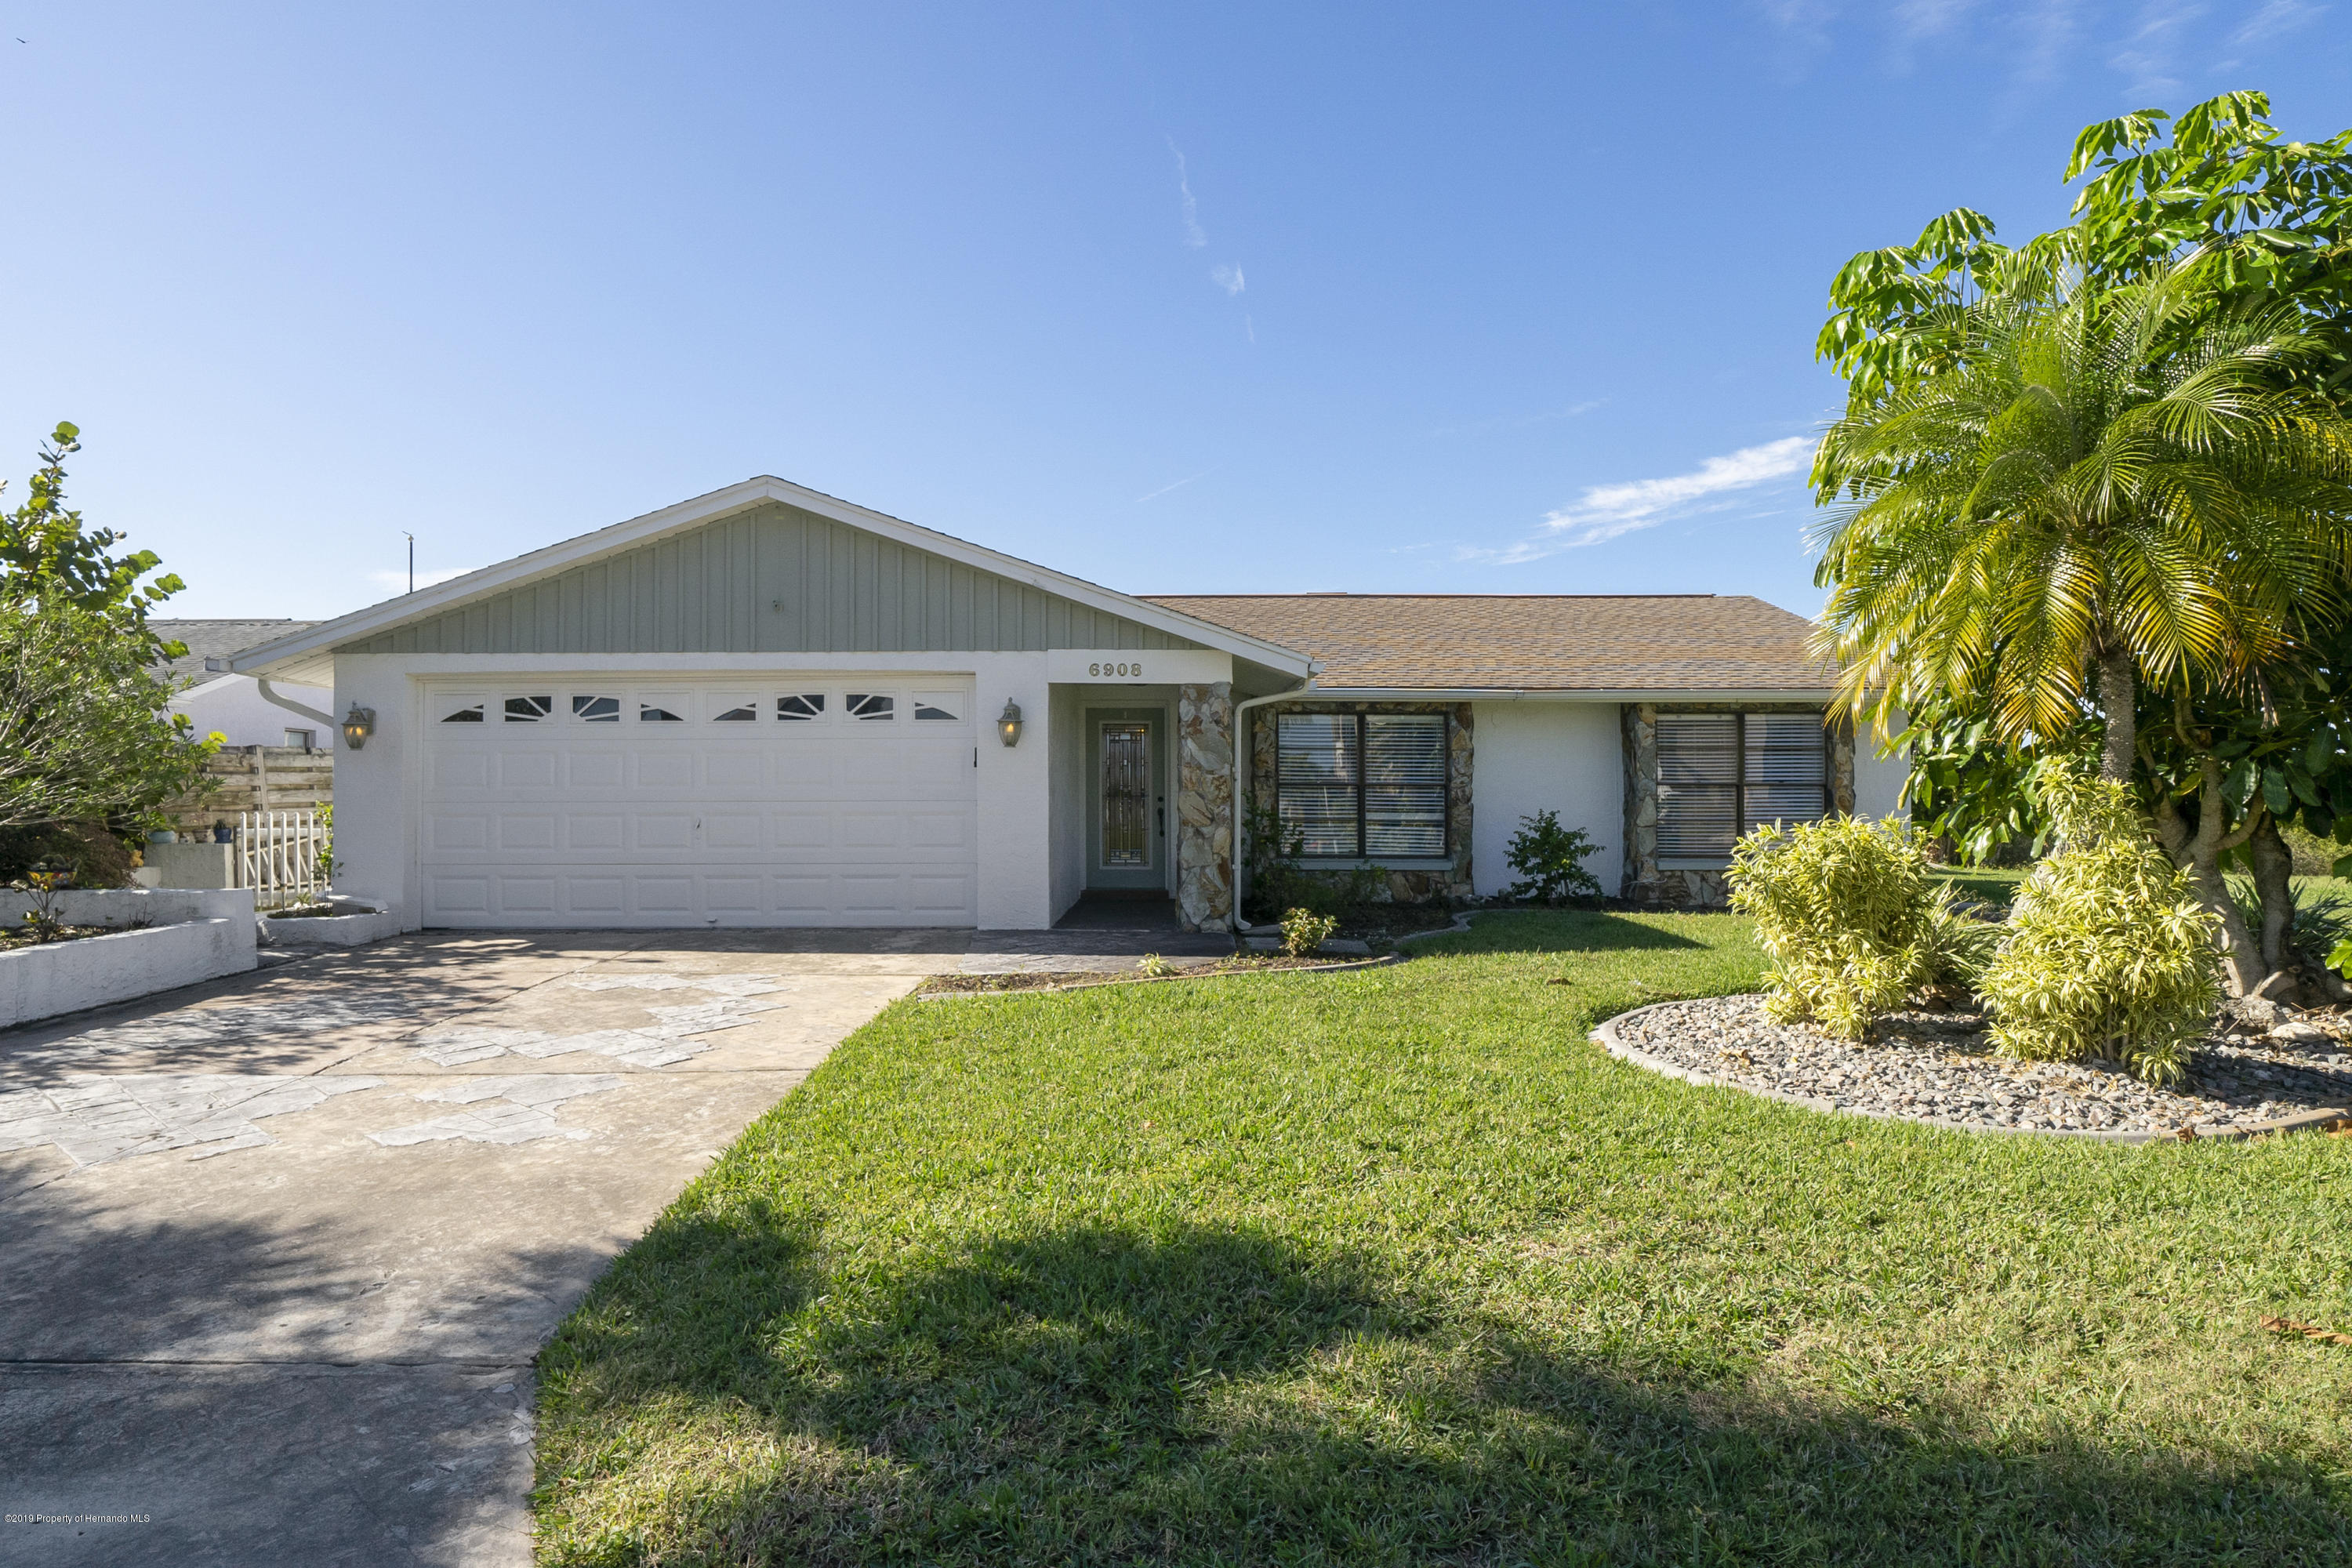 6908 Southwind Drive, Hudson, Florida 34667, 3 Bedrooms Bedrooms, ,2 BathroomsBathrooms,Residential,For Sale,Southwind,2206059